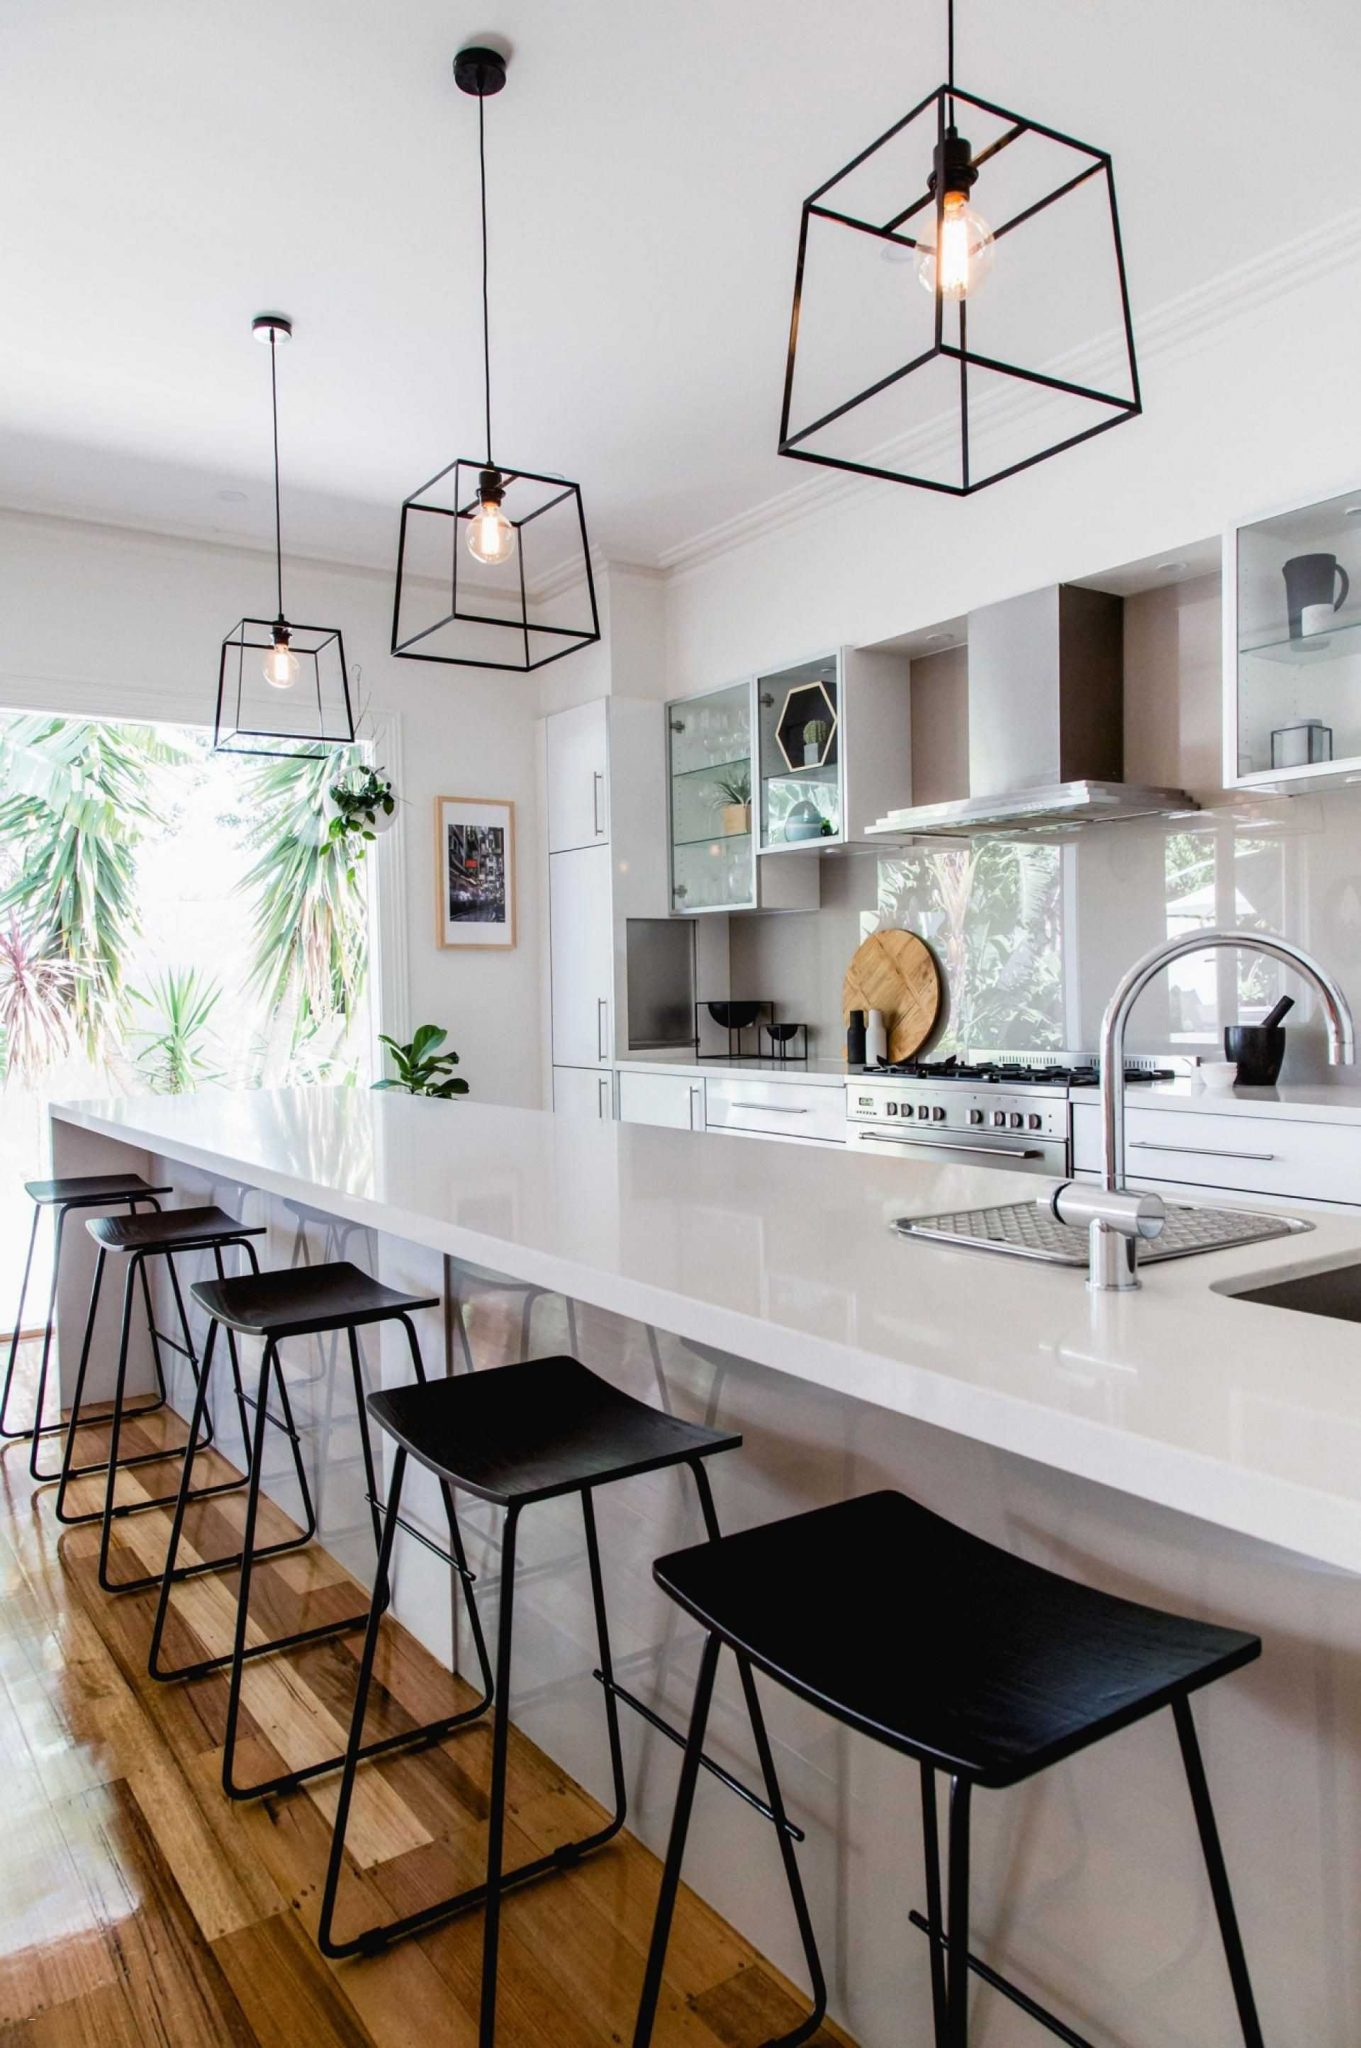 10 Stylish Kitchen Lighting Ideas To Get Inspired